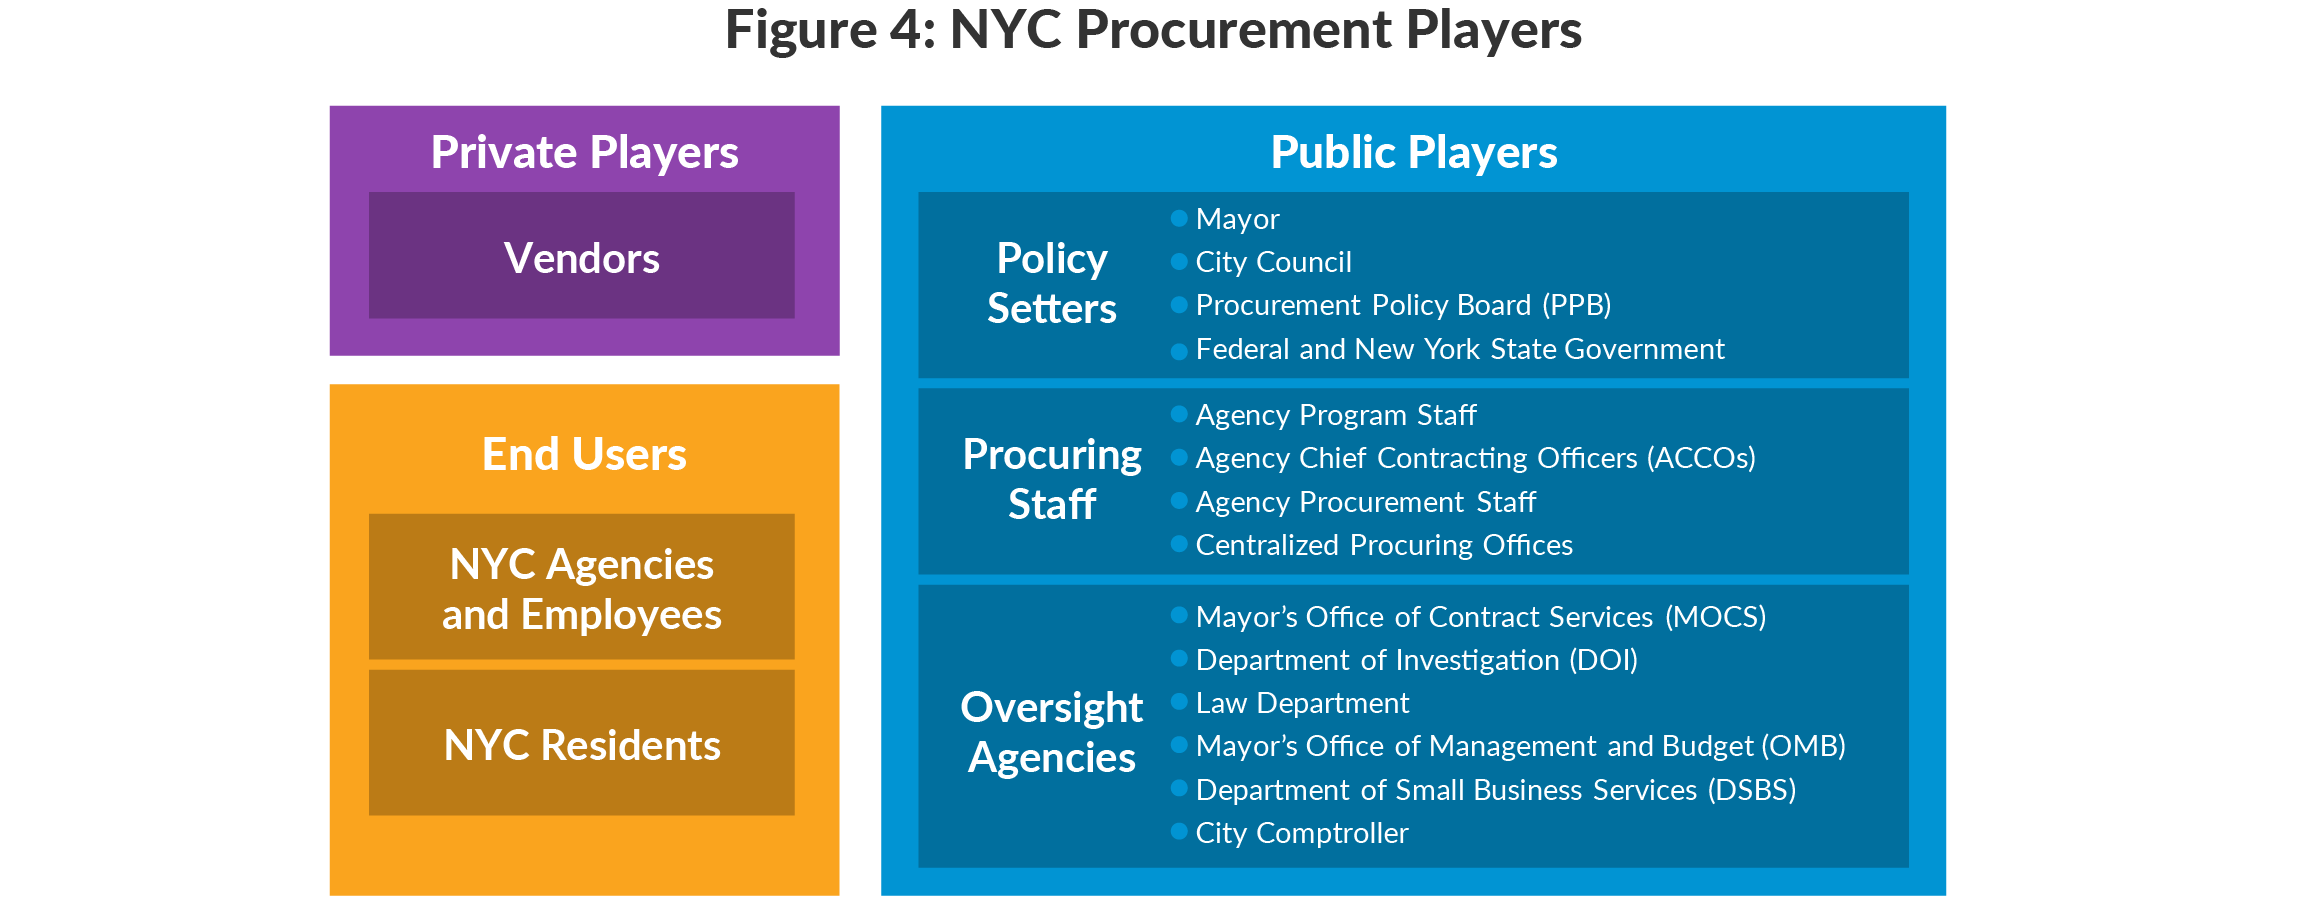 Figure 4: NYC Procurement Players